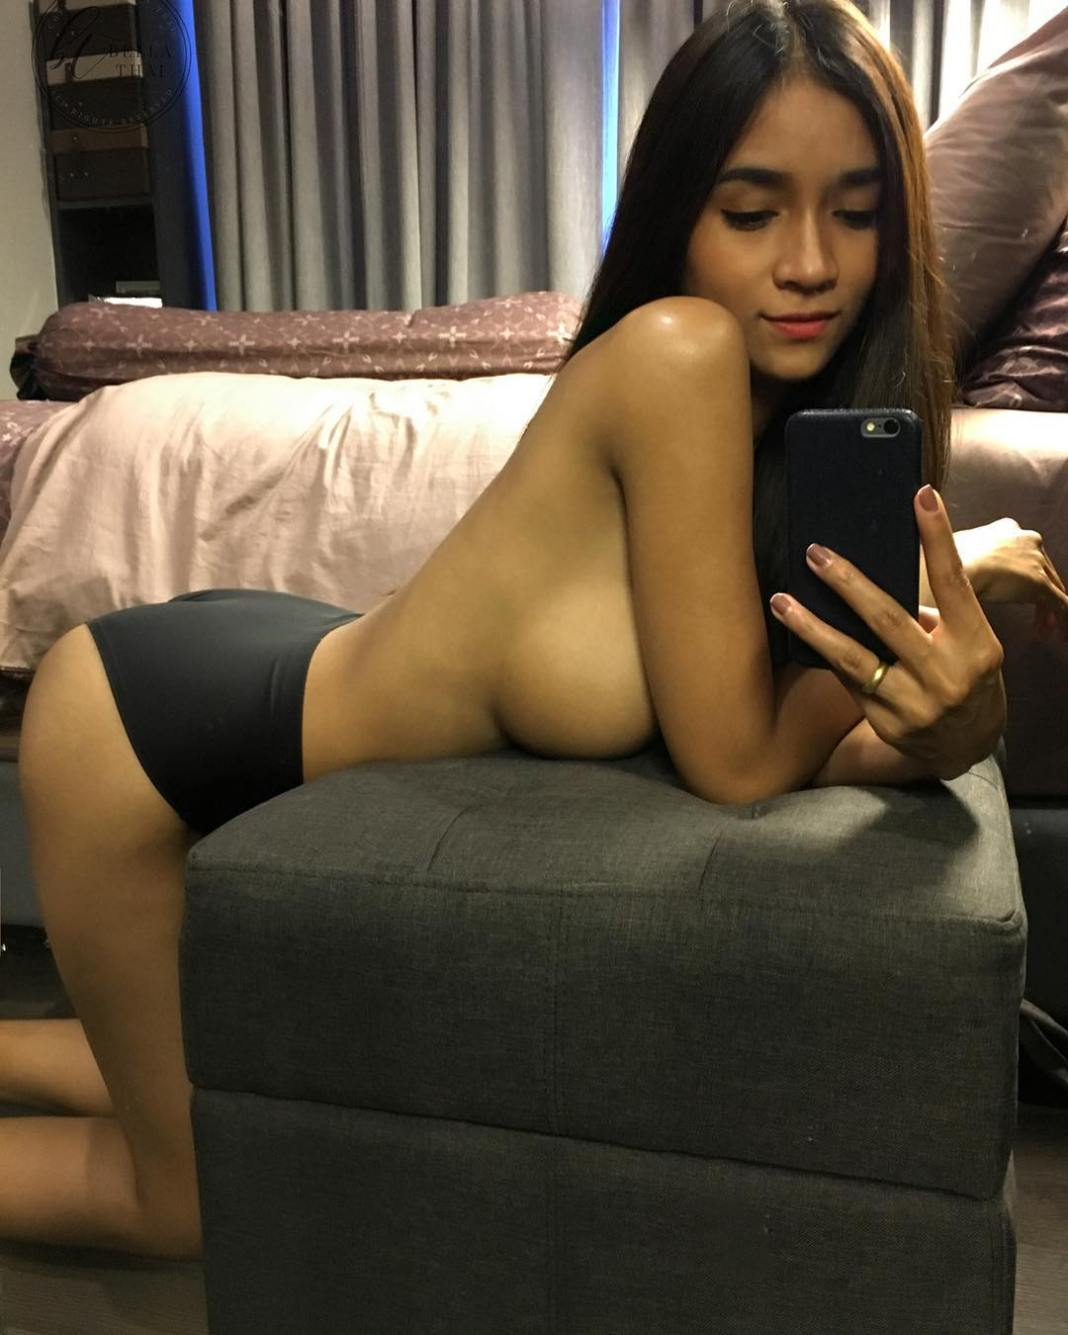 Bella-Thai-nude-sexy-photos-leaked-029-from-sexvcl.net_ Thai model Bella Thai nude sexy photos leaked